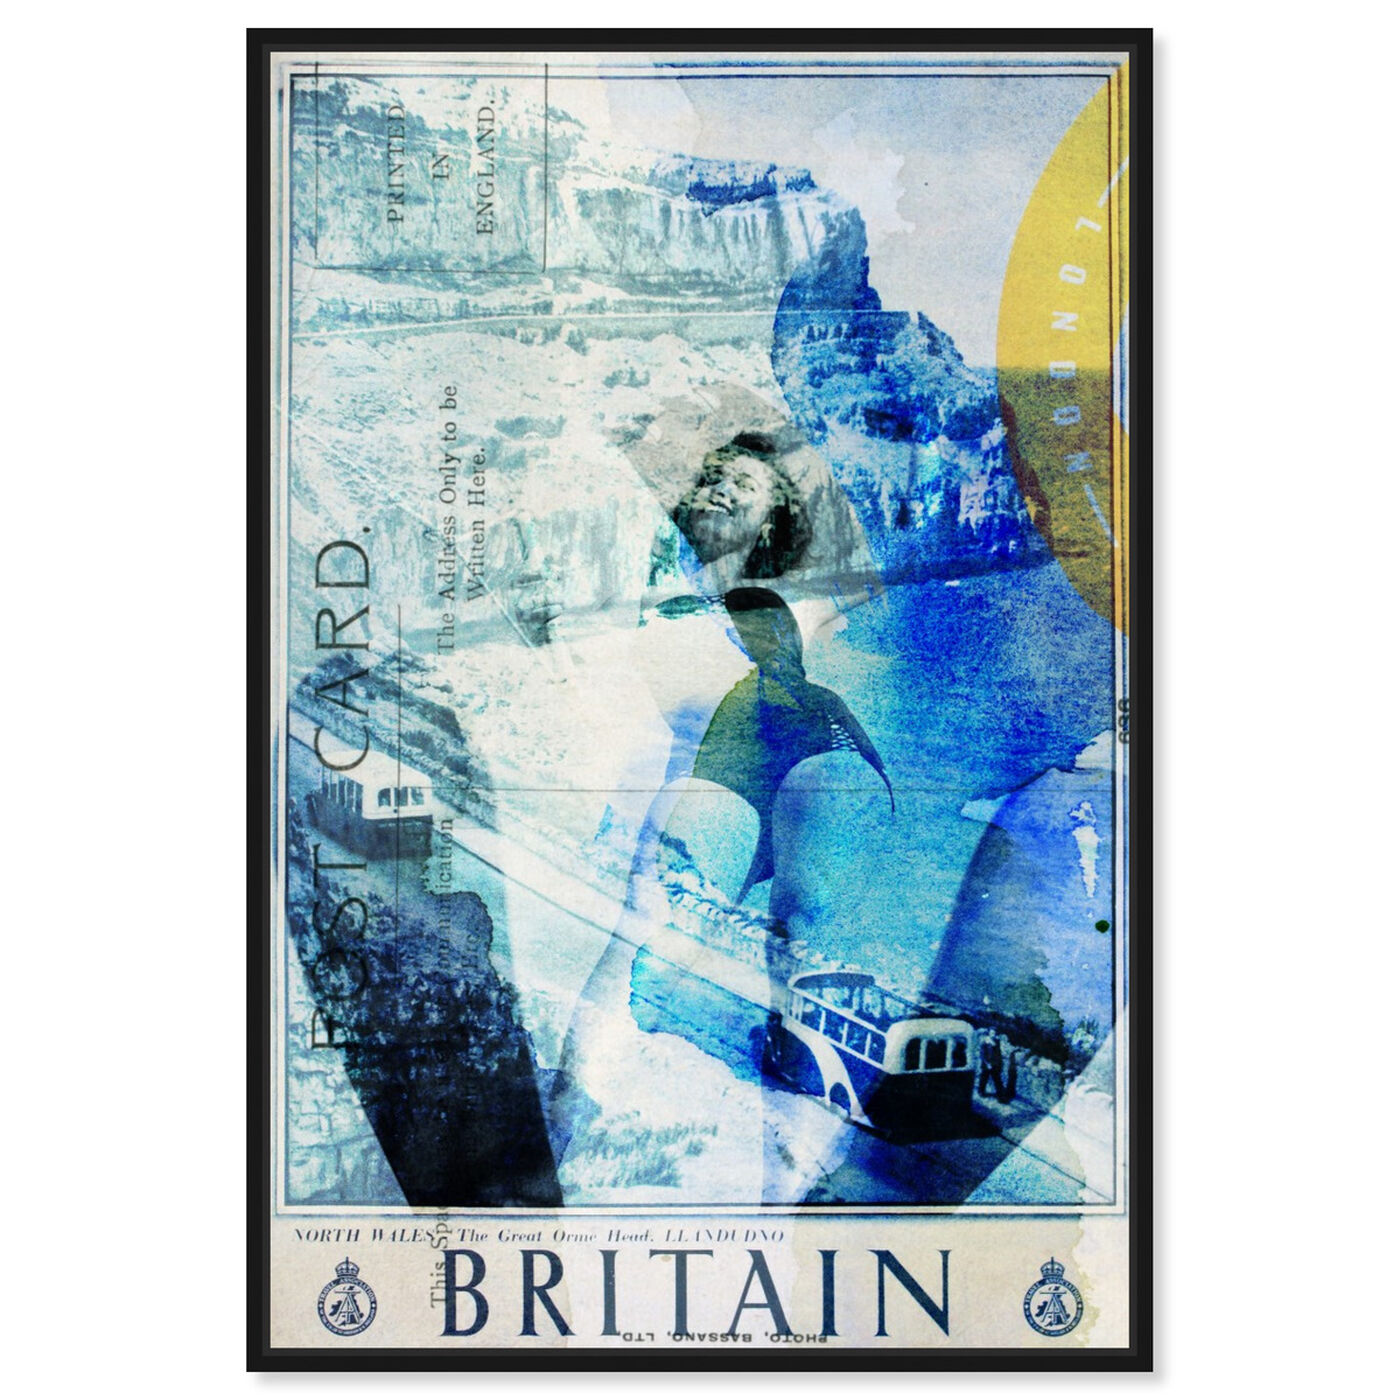 Front view of Britain featuring advertising and posters art.